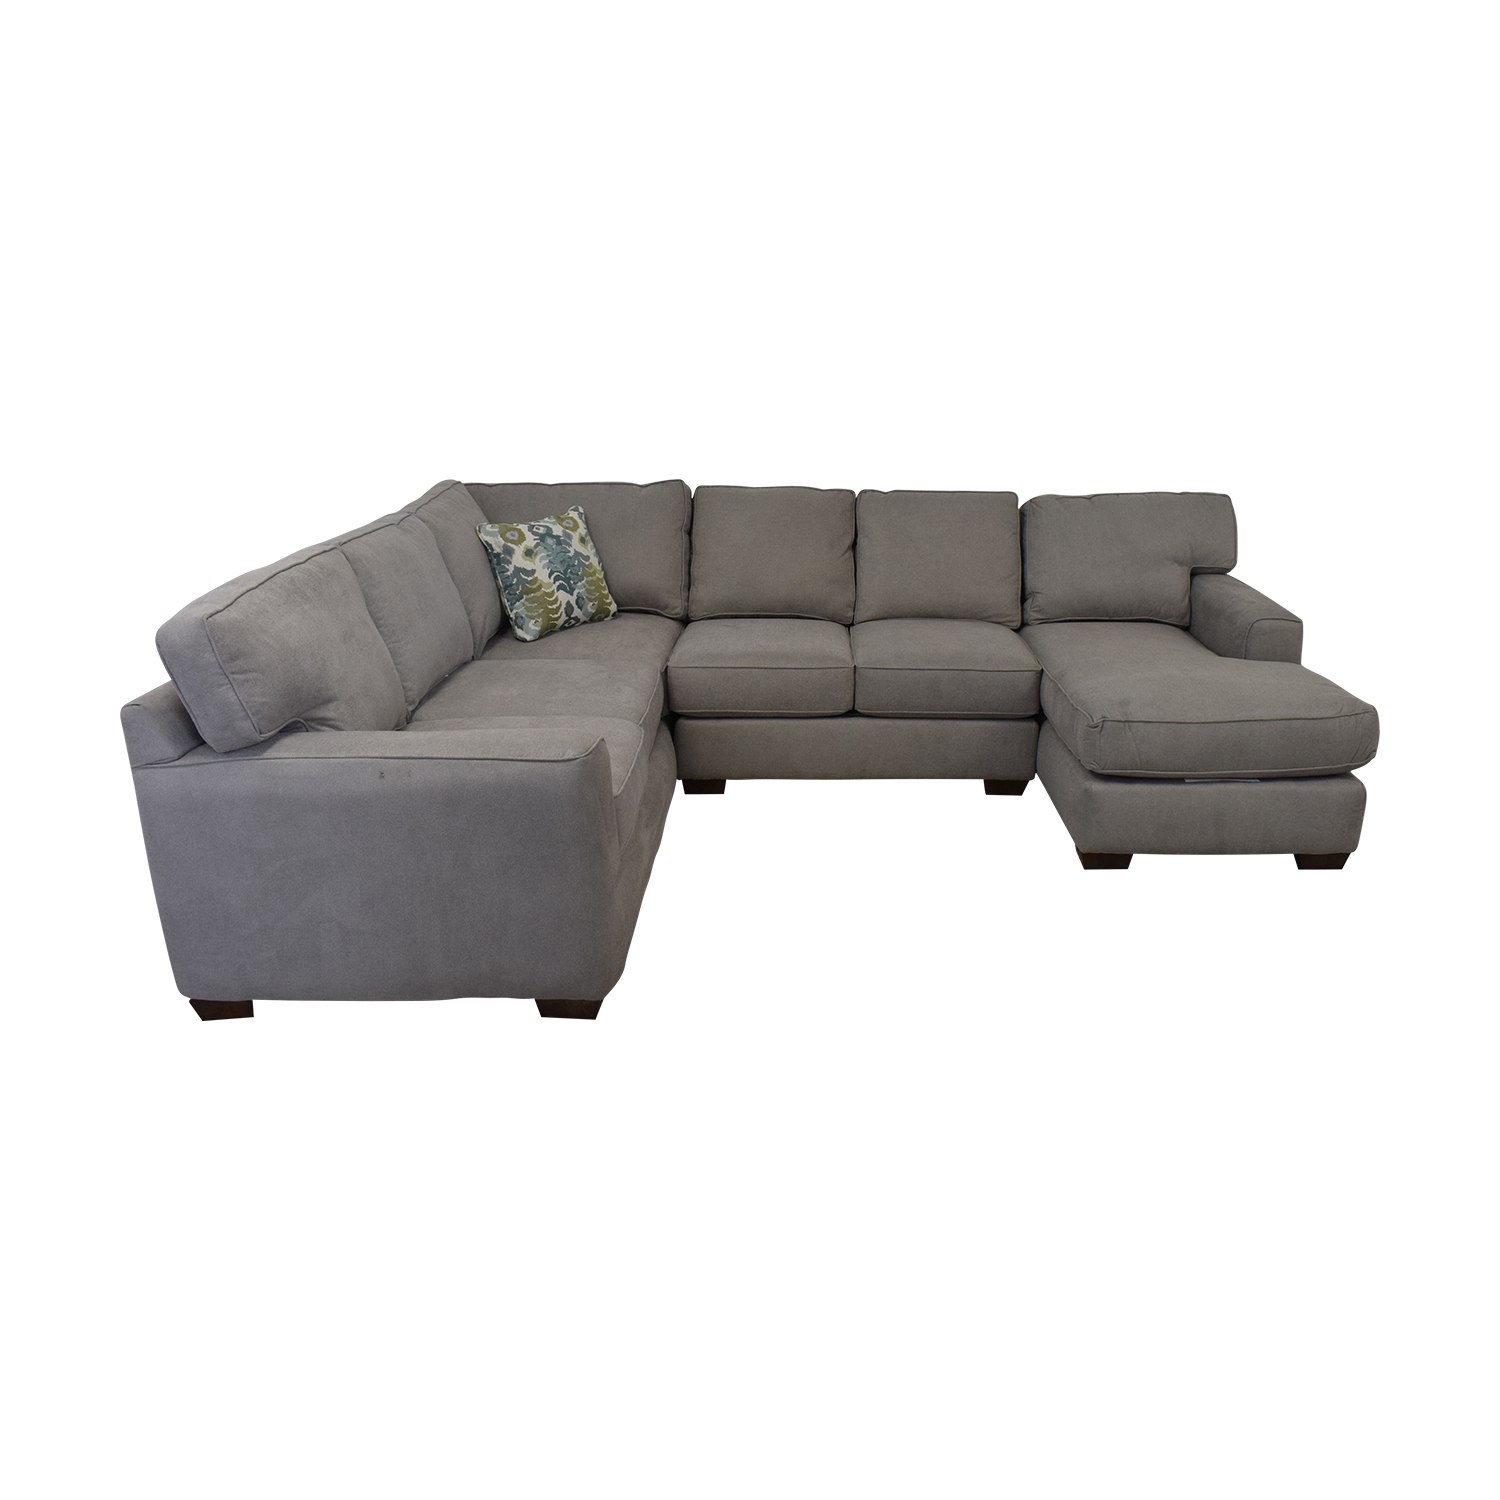 Klaussner Klaussner Hybrid Chaise Sectional Sofa for sale